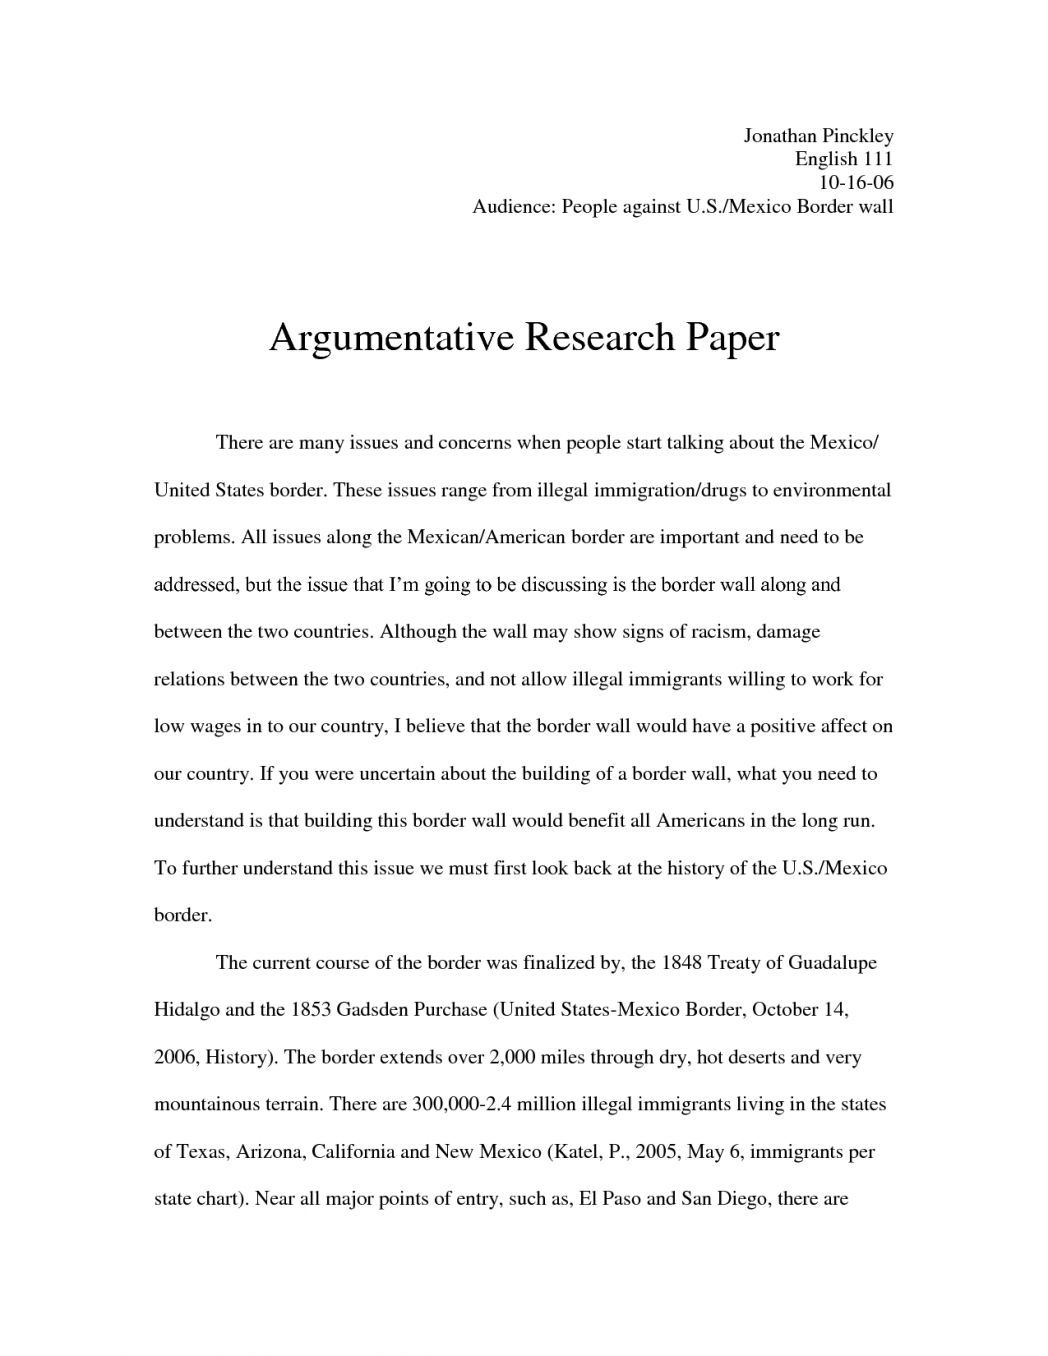 004 Argumentative Essay On Illegal Immigration Argument Research Persuasive Why Is Good Pgune Reform In America Topics Control Pro Thesis Rights 1048x1356 Exceptional Conclusion Full